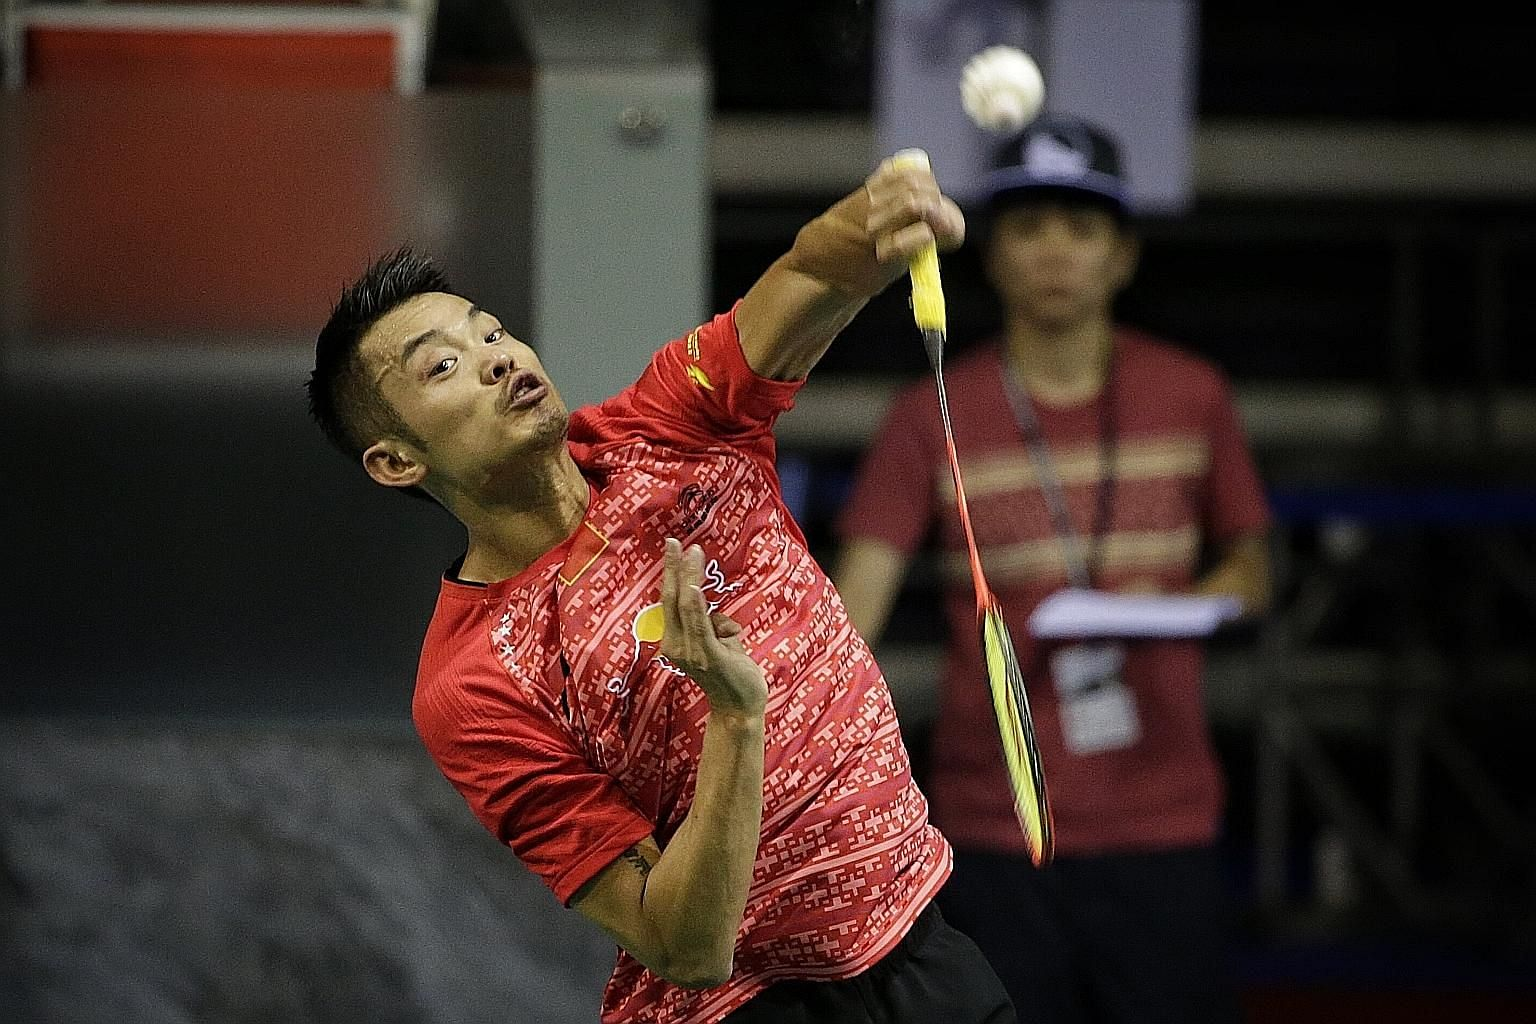 China's Lin Dan, who beat Indonesian Ihsan Maulana Mustofa in his first appearance in Singapore in five years, felt that conditions were not as draughty as before, unlike compatriot Chen Long, who had trouble adjusting.